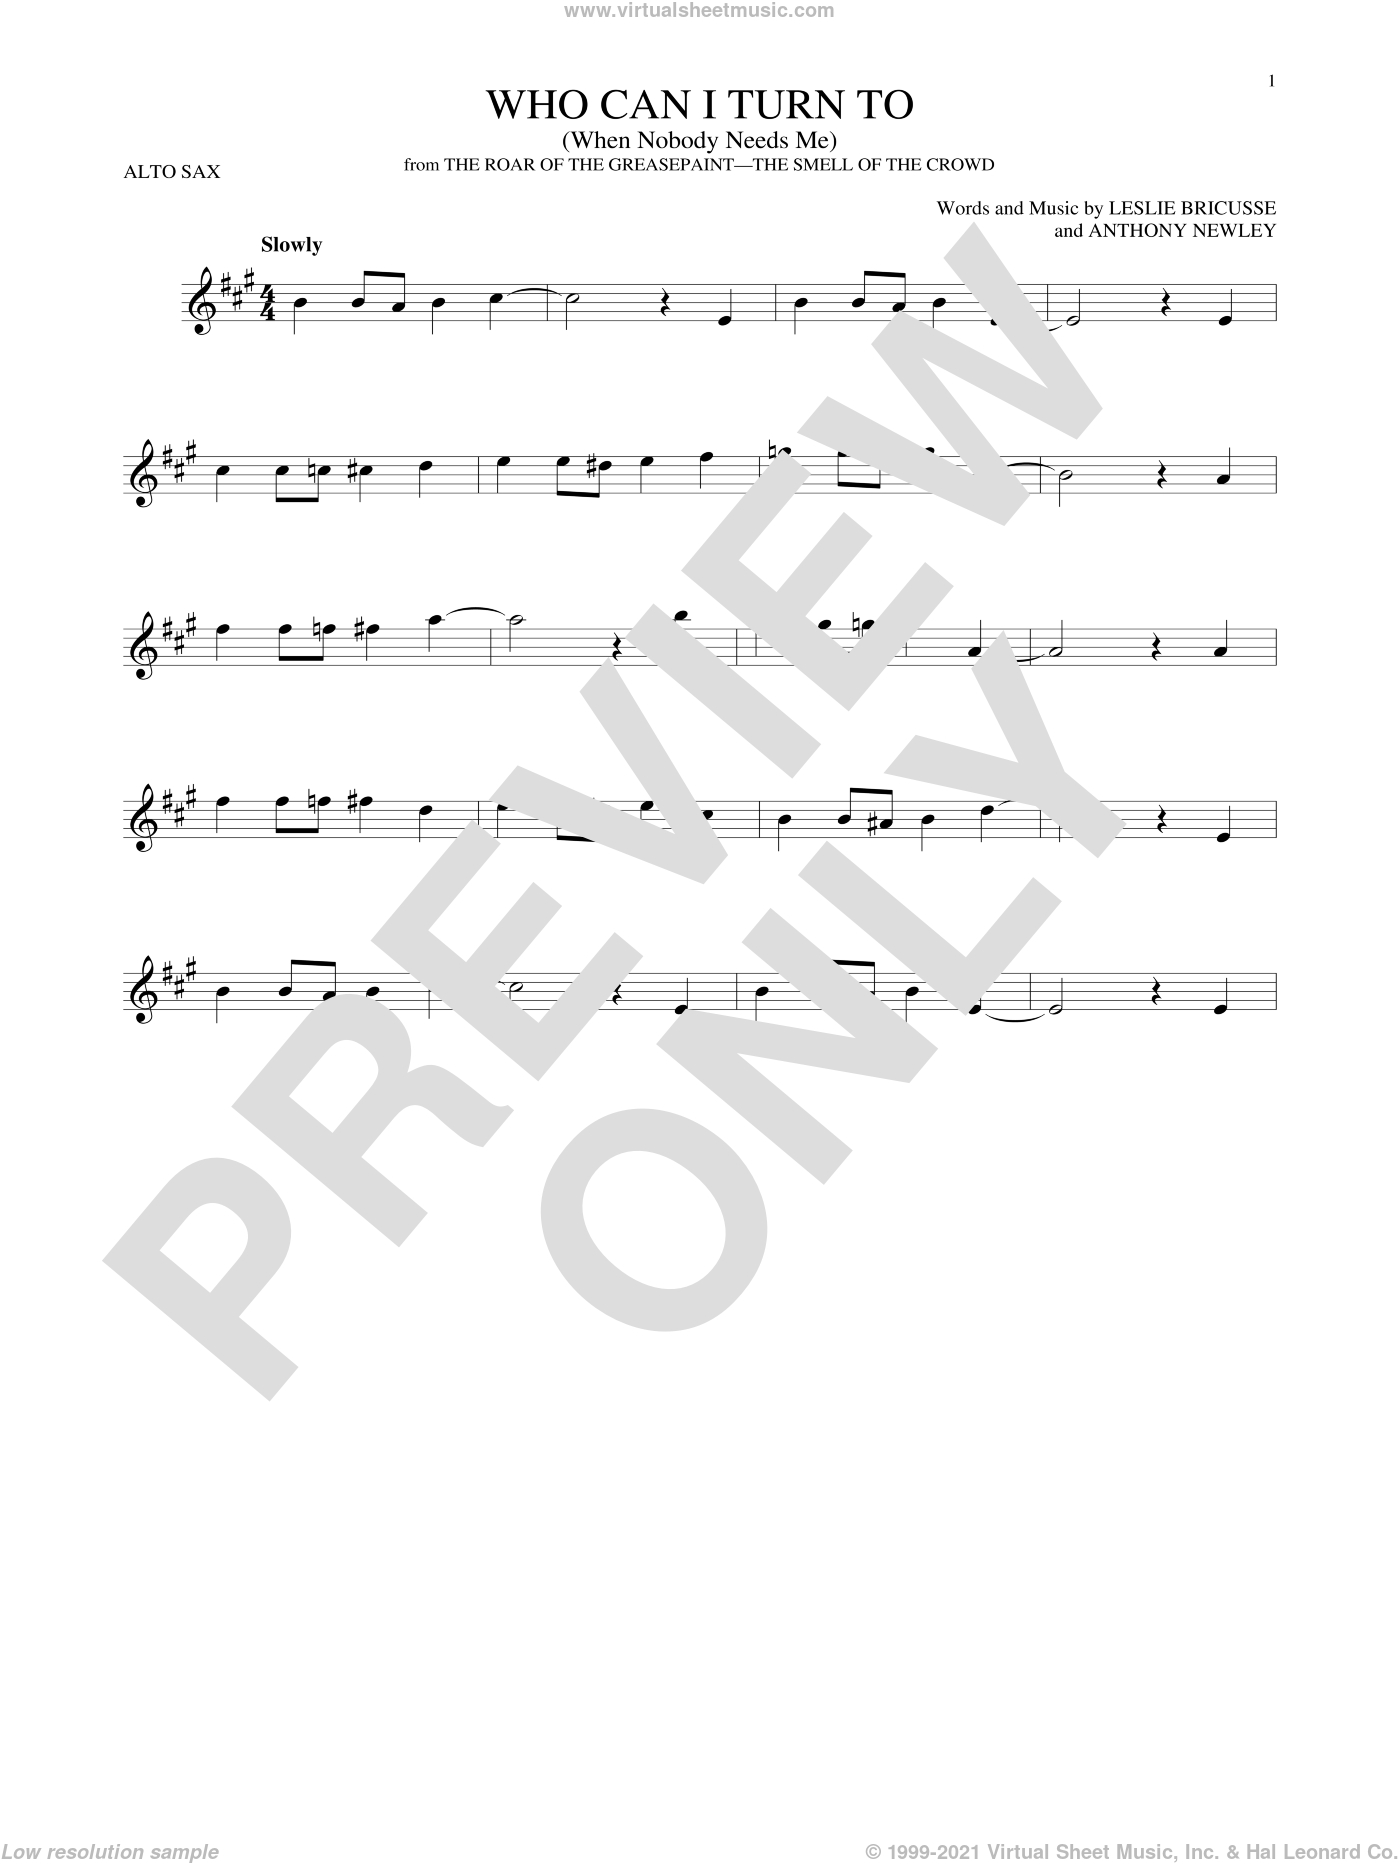 Who Can I Turn To (When Nobody Needs Me) sheet music for alto saxophone solo by Anthony Newley and Leslie Bricusse, intermediate skill level